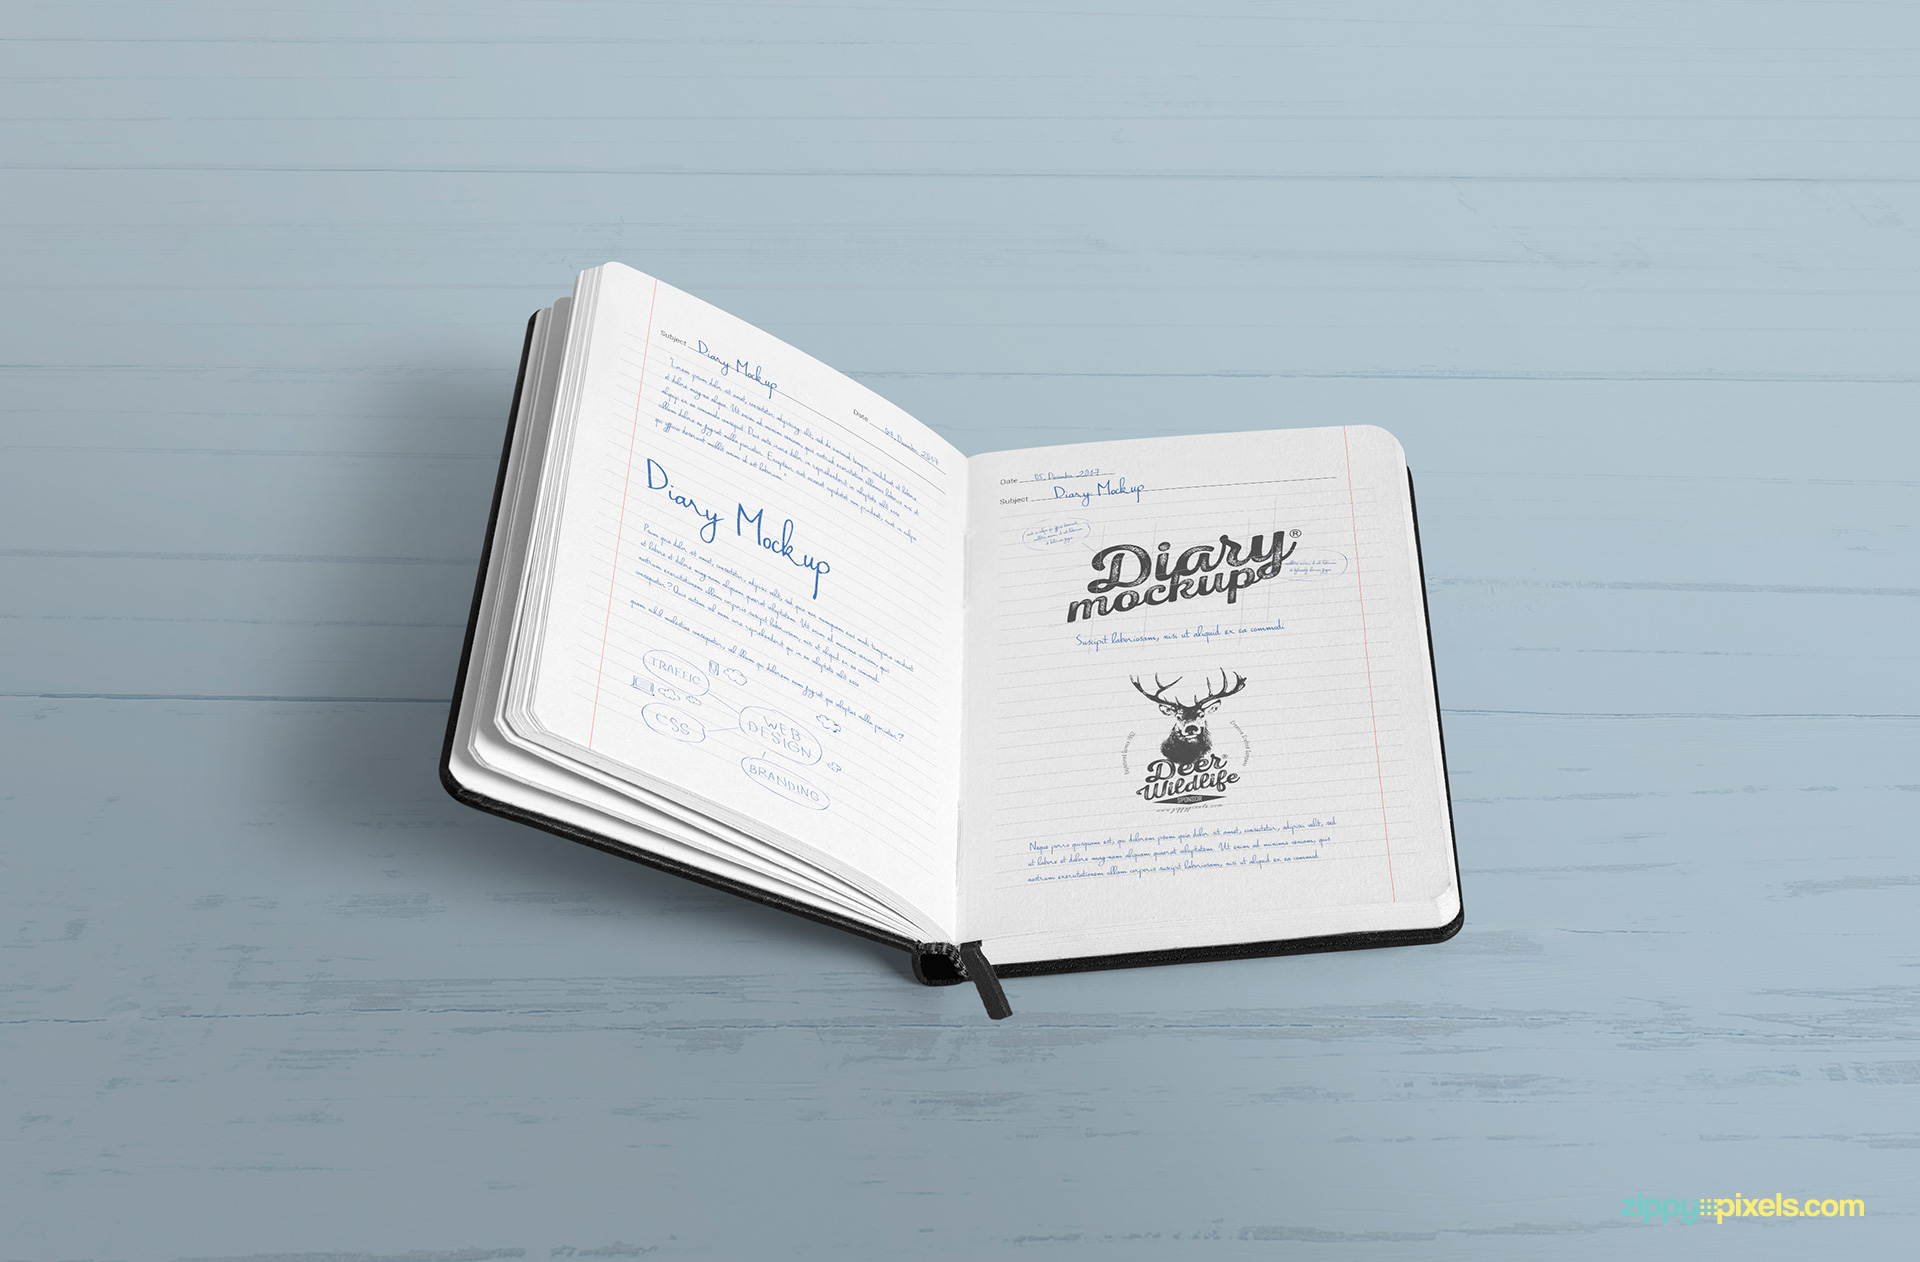 Full view of diary mockup psd with changeable background.